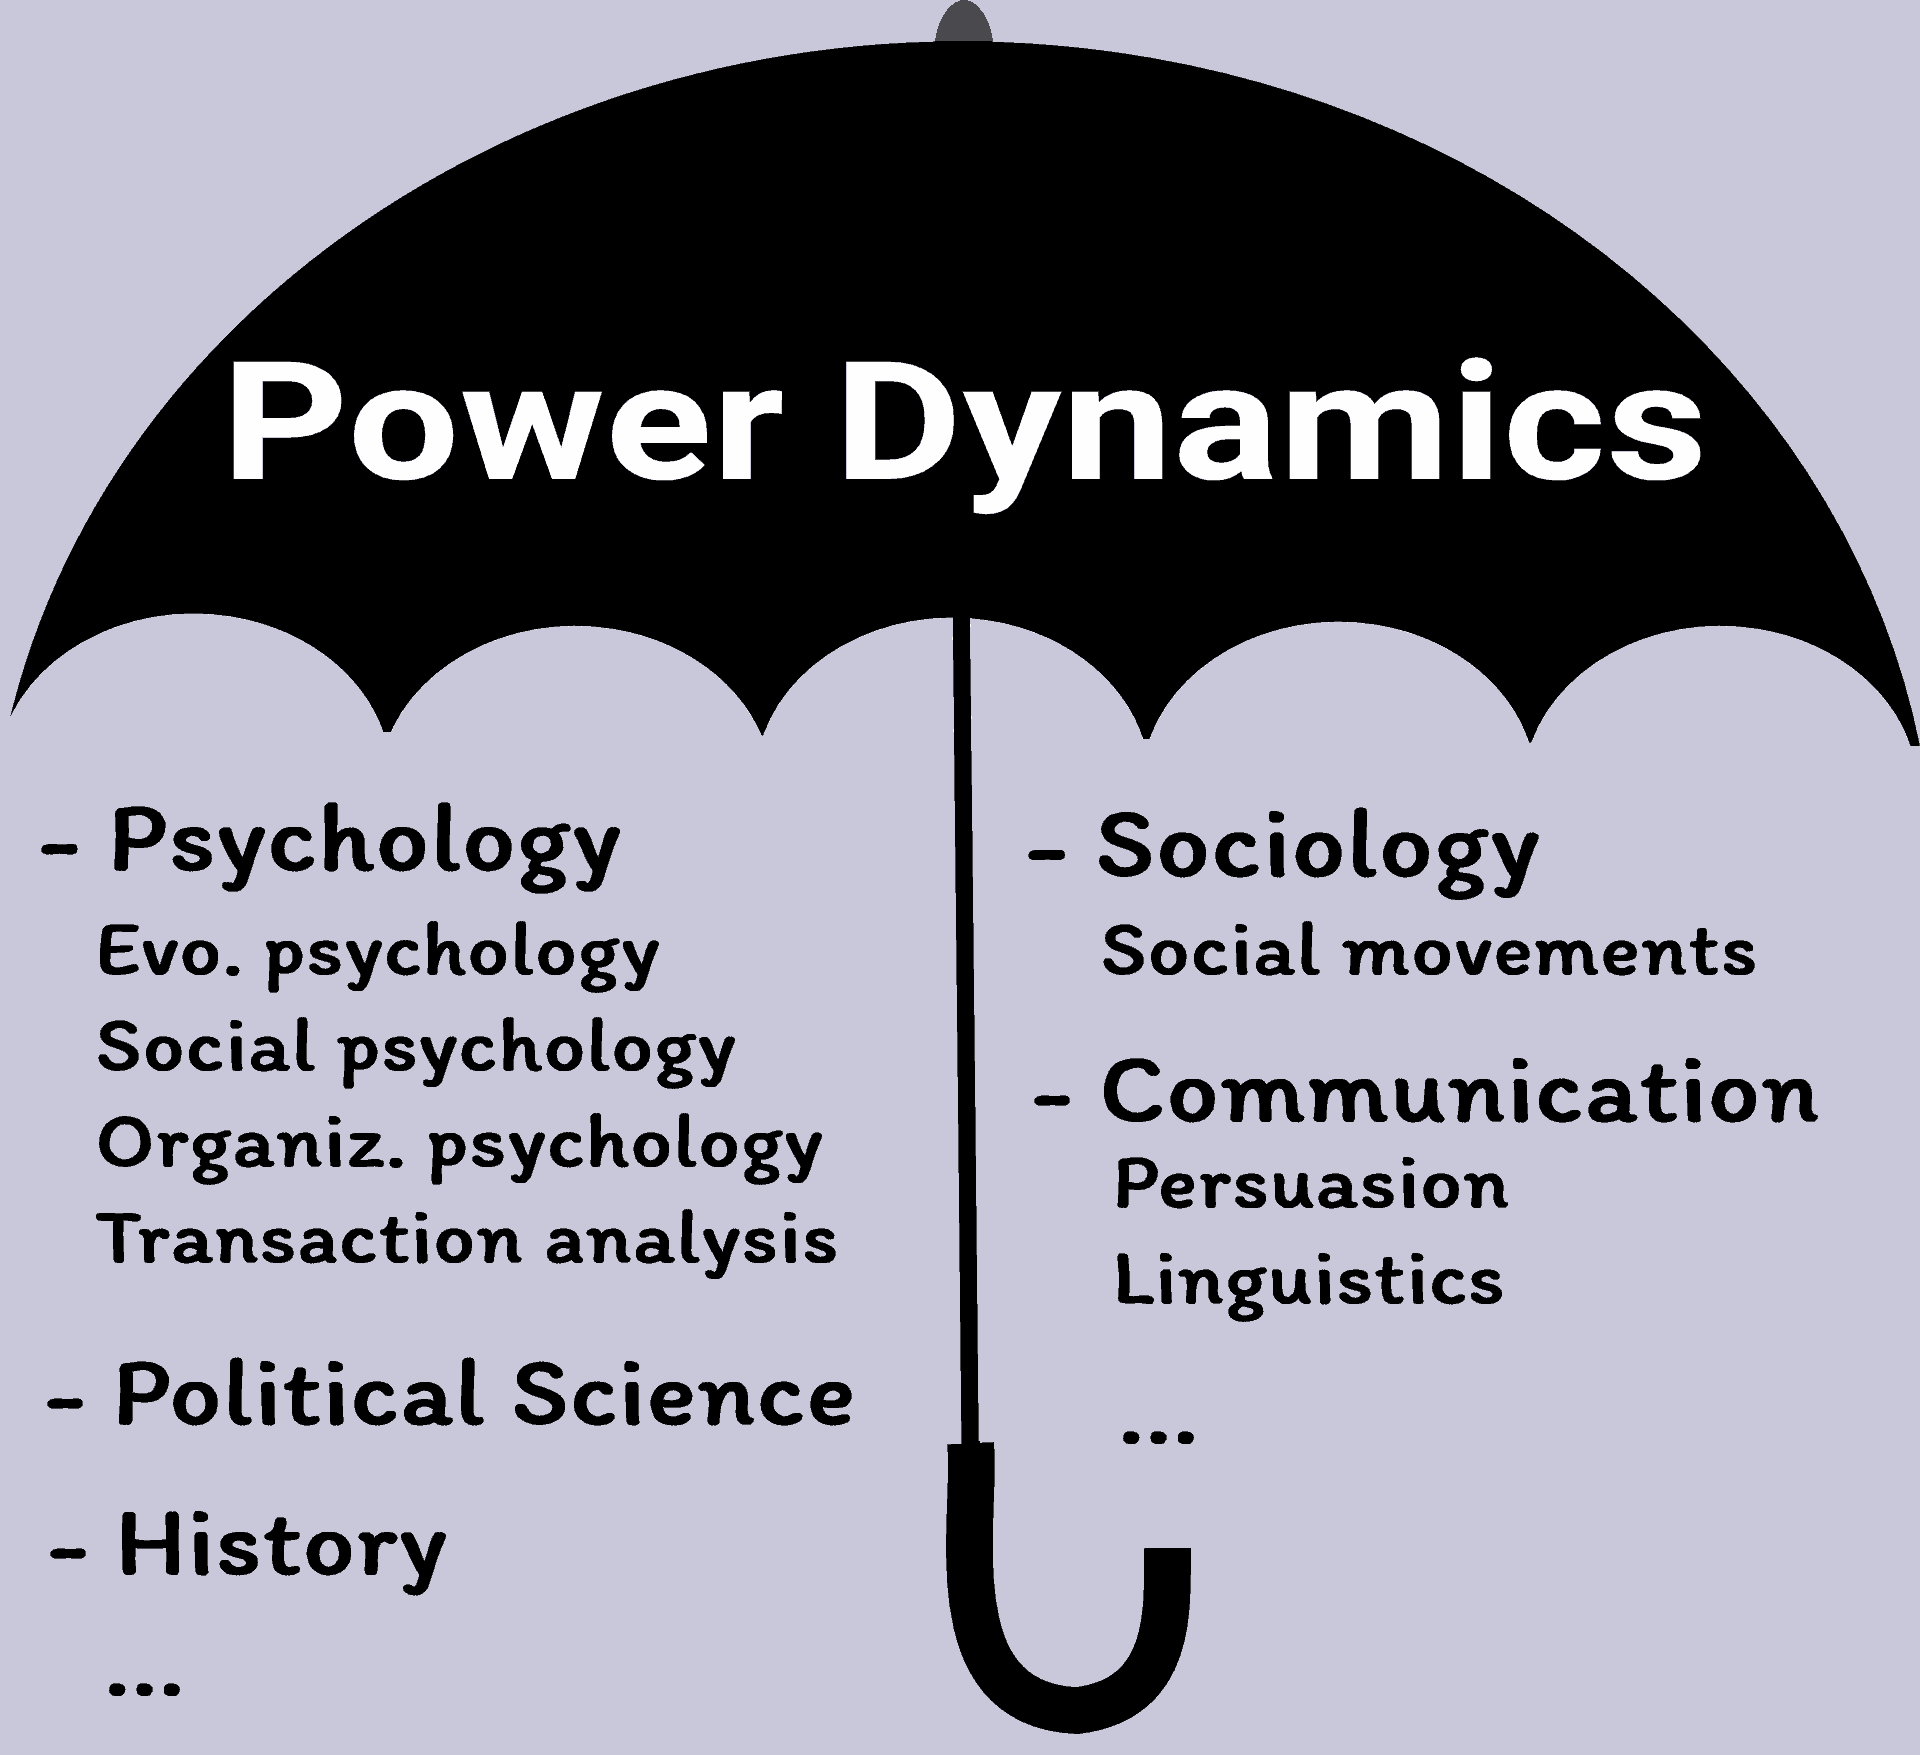 power dynamics in the social sciences